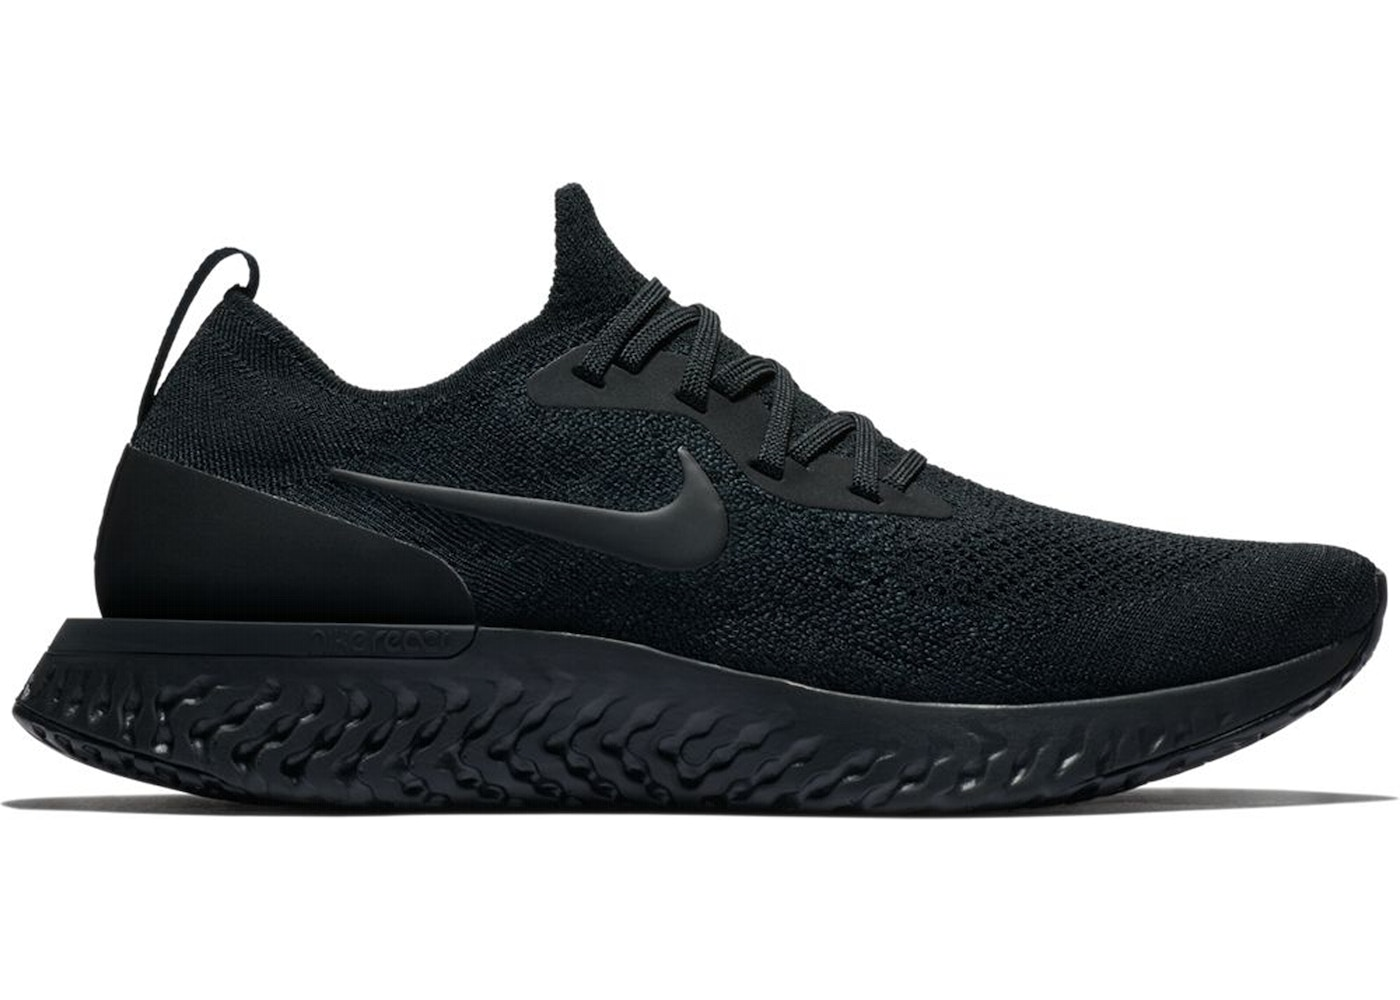 f2ef27f07e12c Nike Epic React Flyknit Triple Black - AQ0067-003